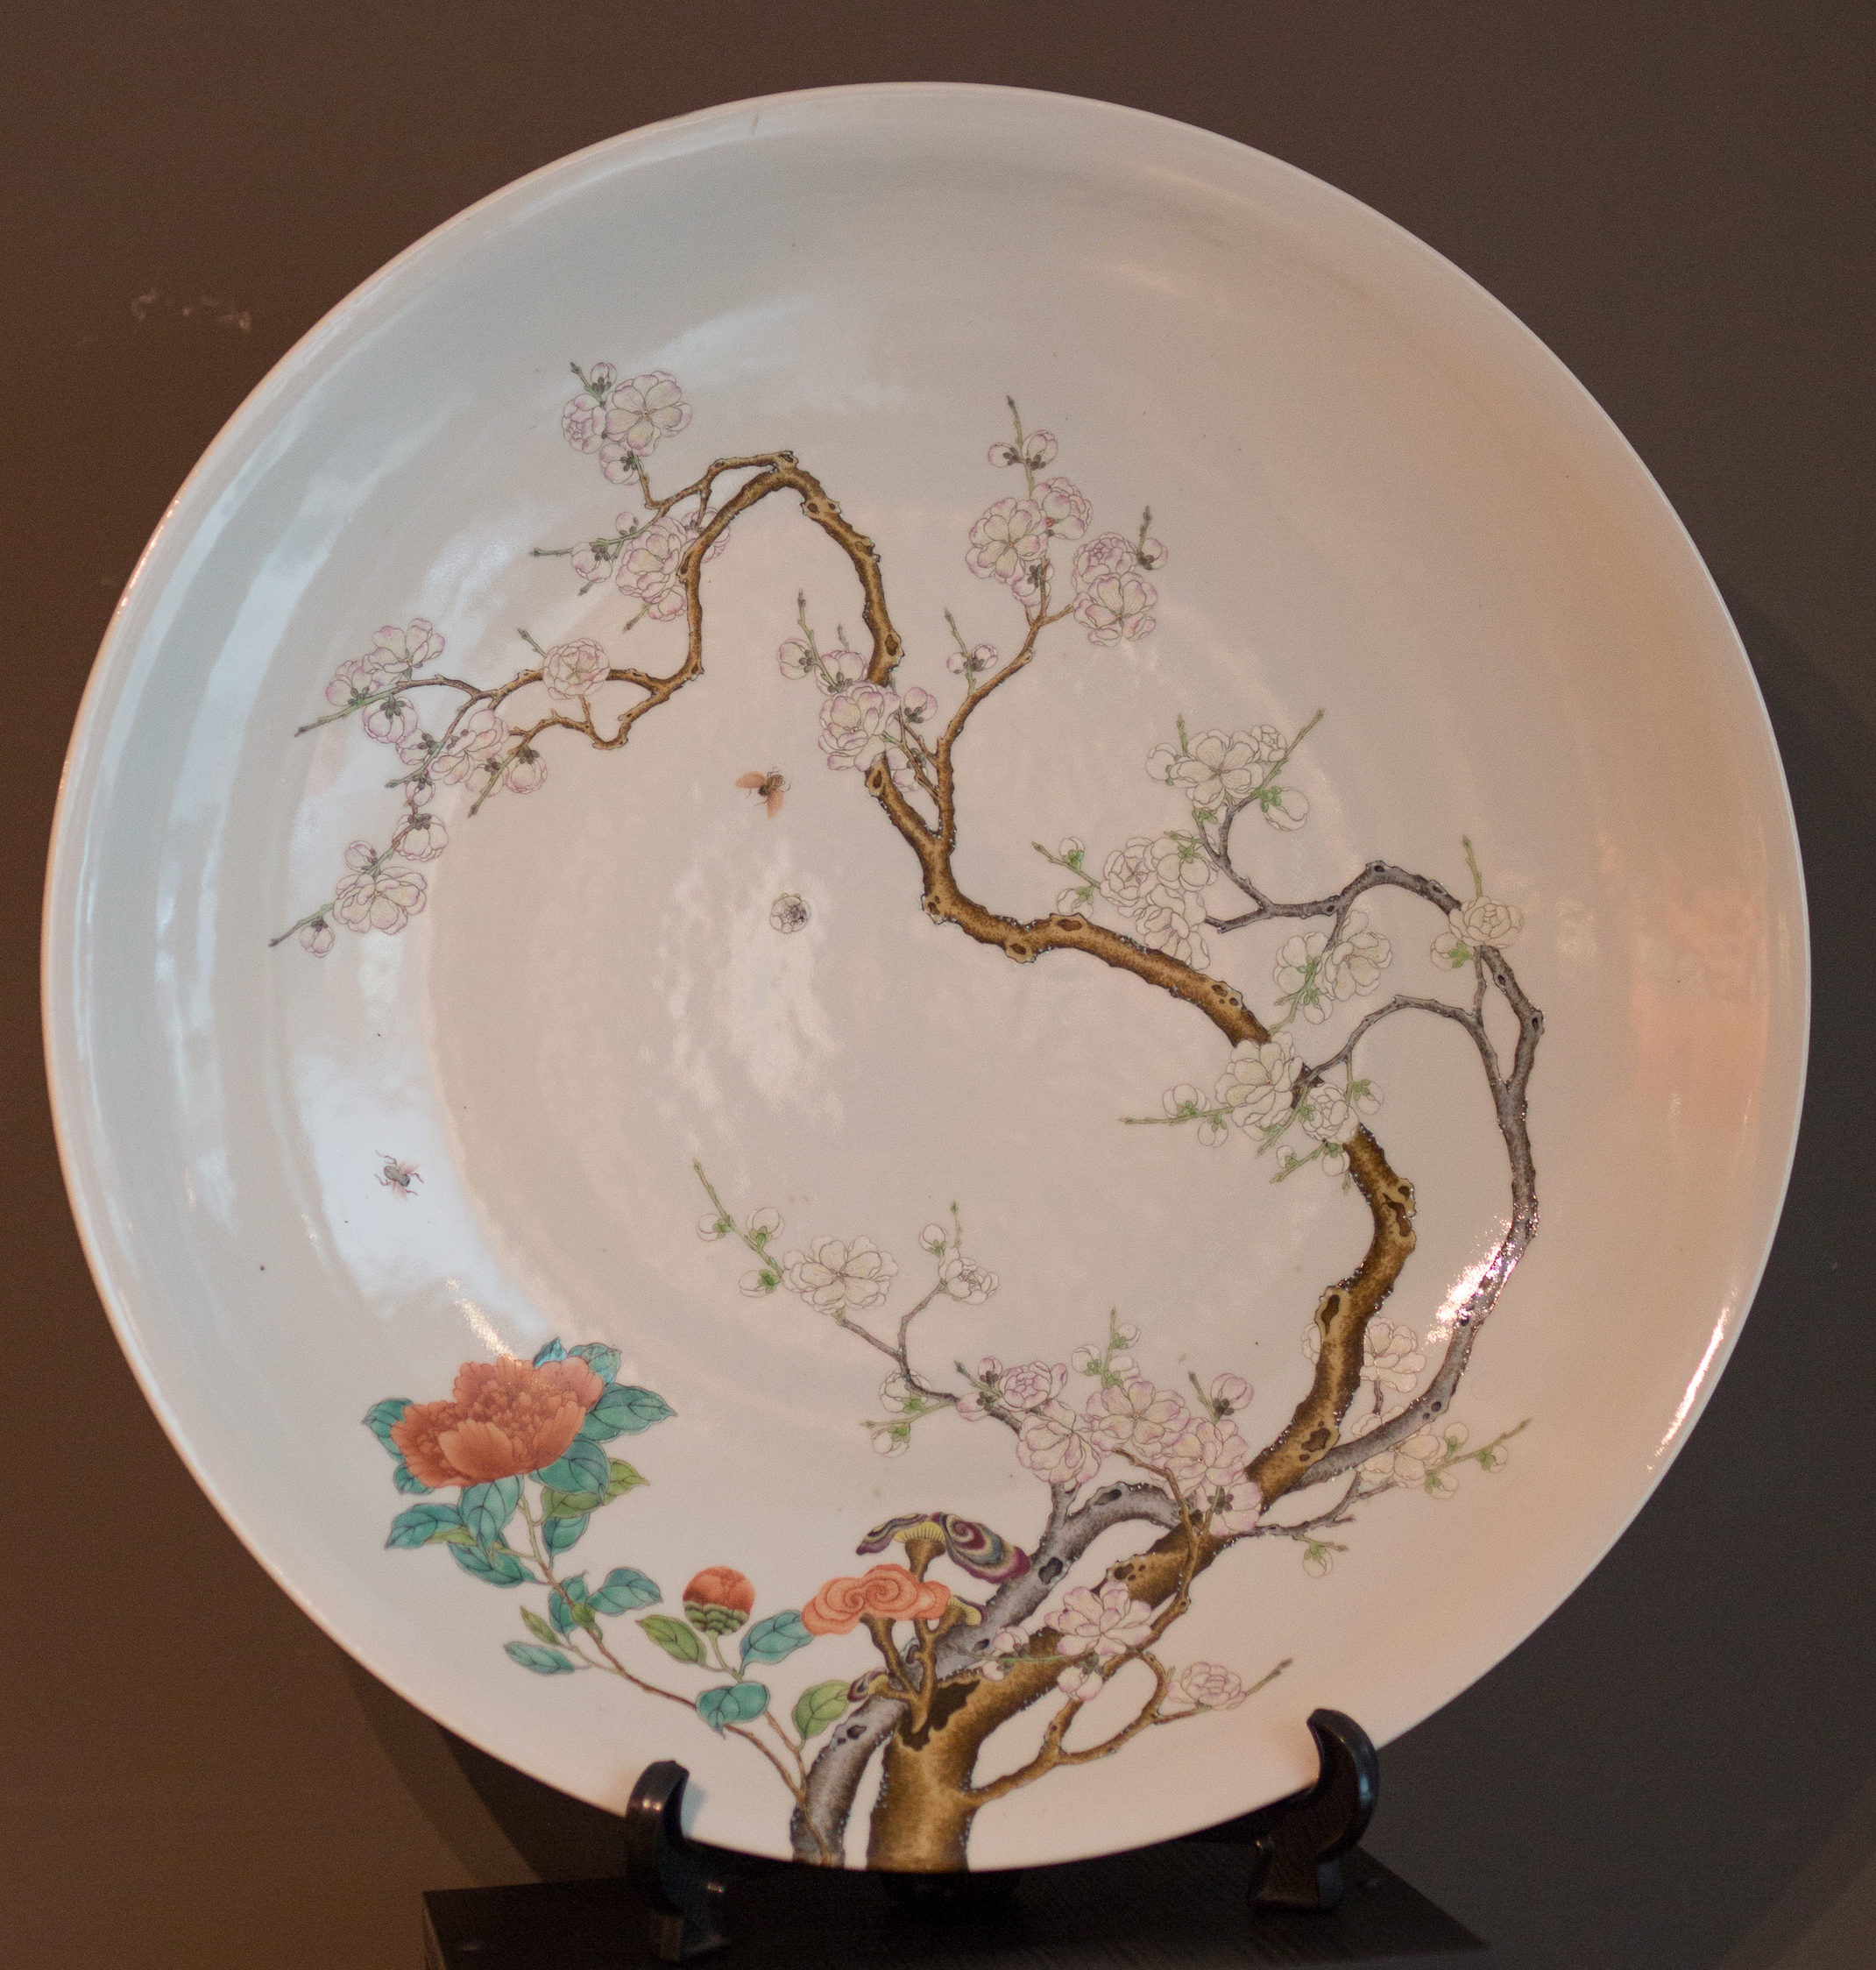 A Large Dish Famille Rose-Decorated Finely Painted With Flowering Prunus And Cherry Branches Beside Bamboo And Lingzhi, YONGZHENG Mark - SOLD Image